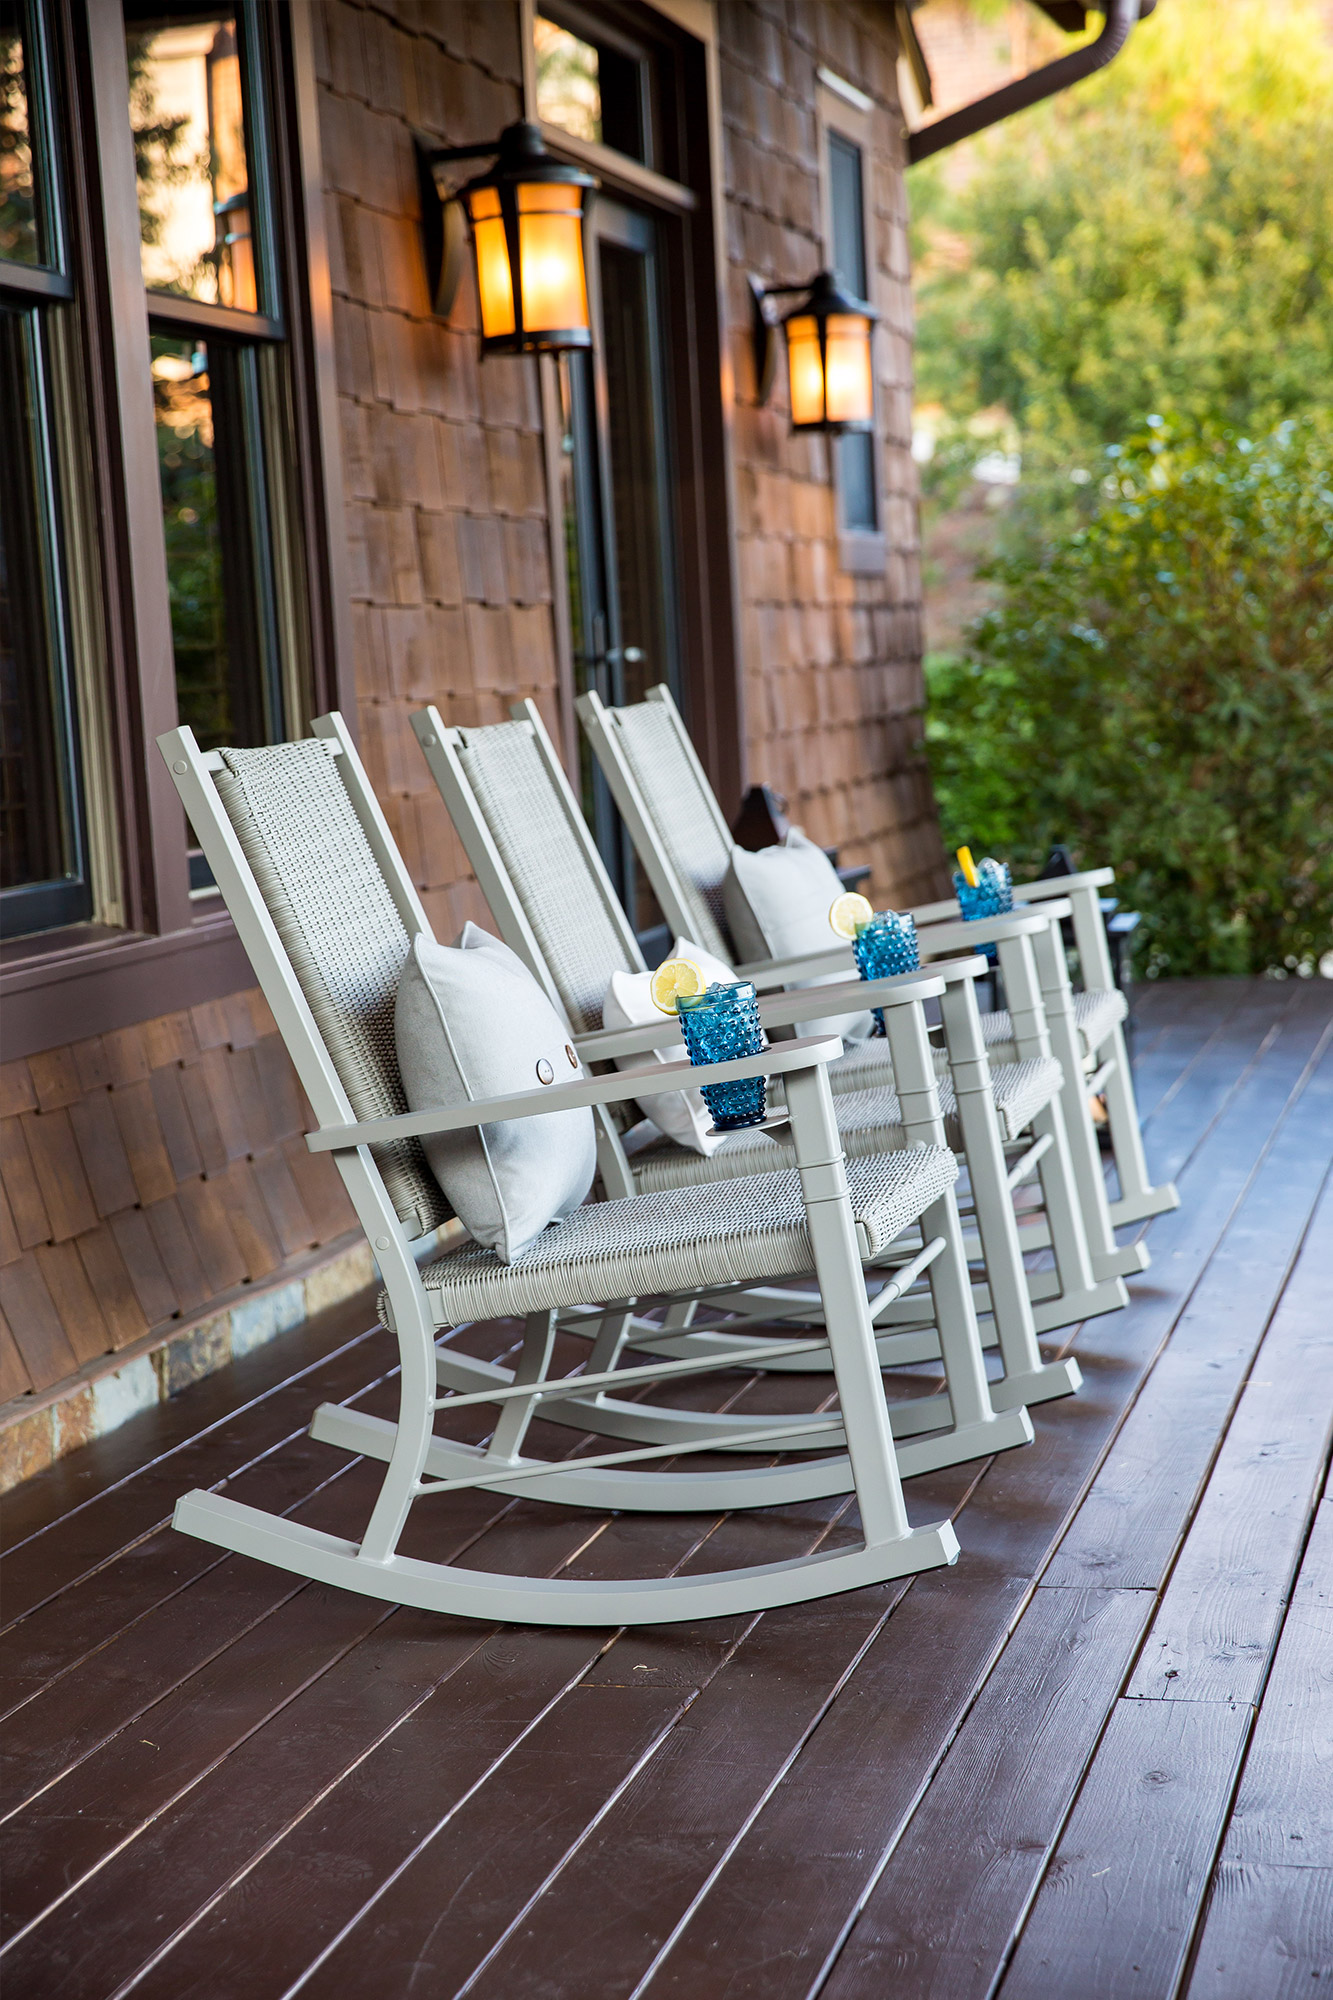 product-photography-country-living-rocking-chairs-by-peak-season.jpg